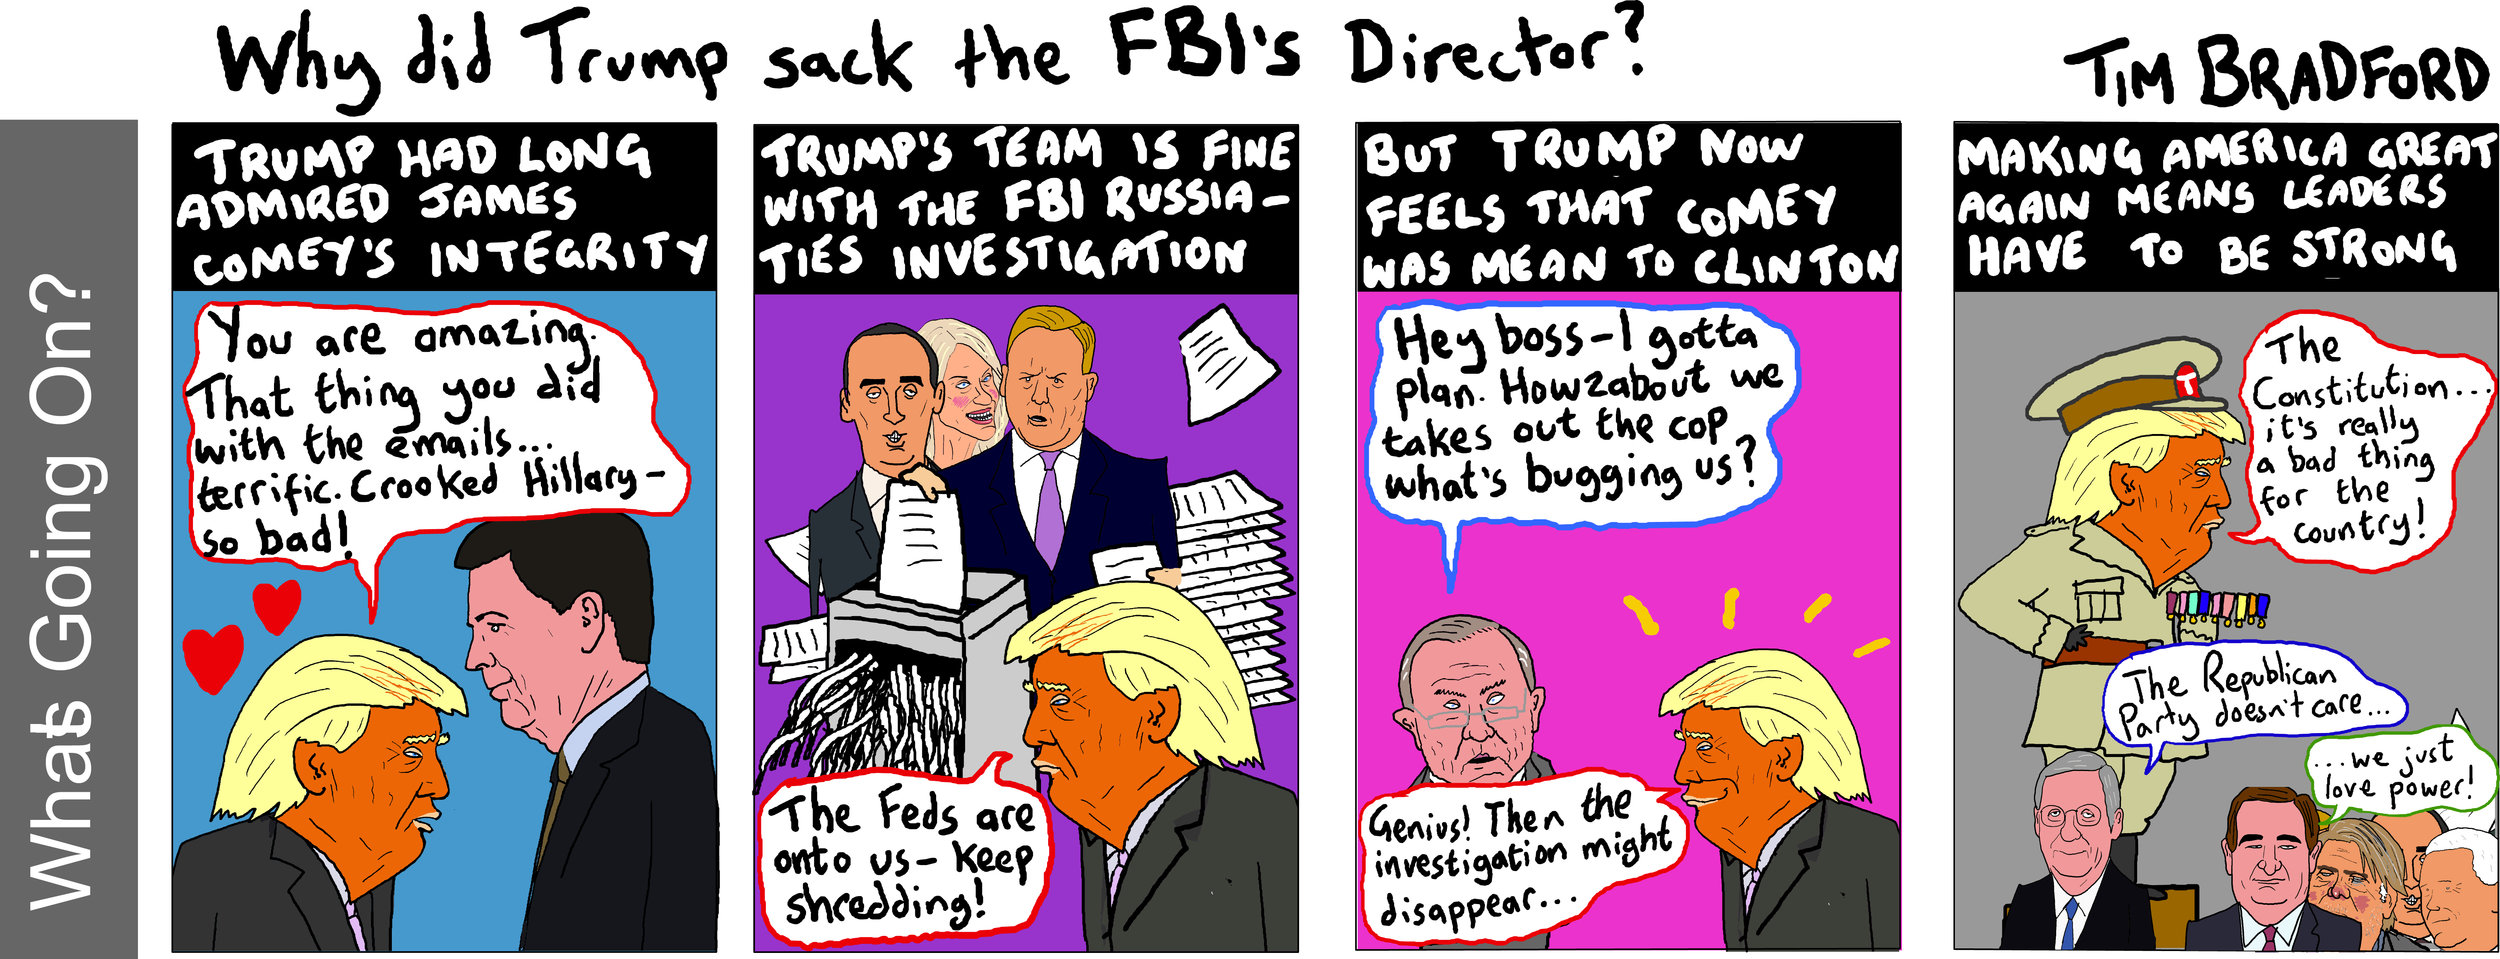 Why did Trump sack the FBI Director? - 12/05/17